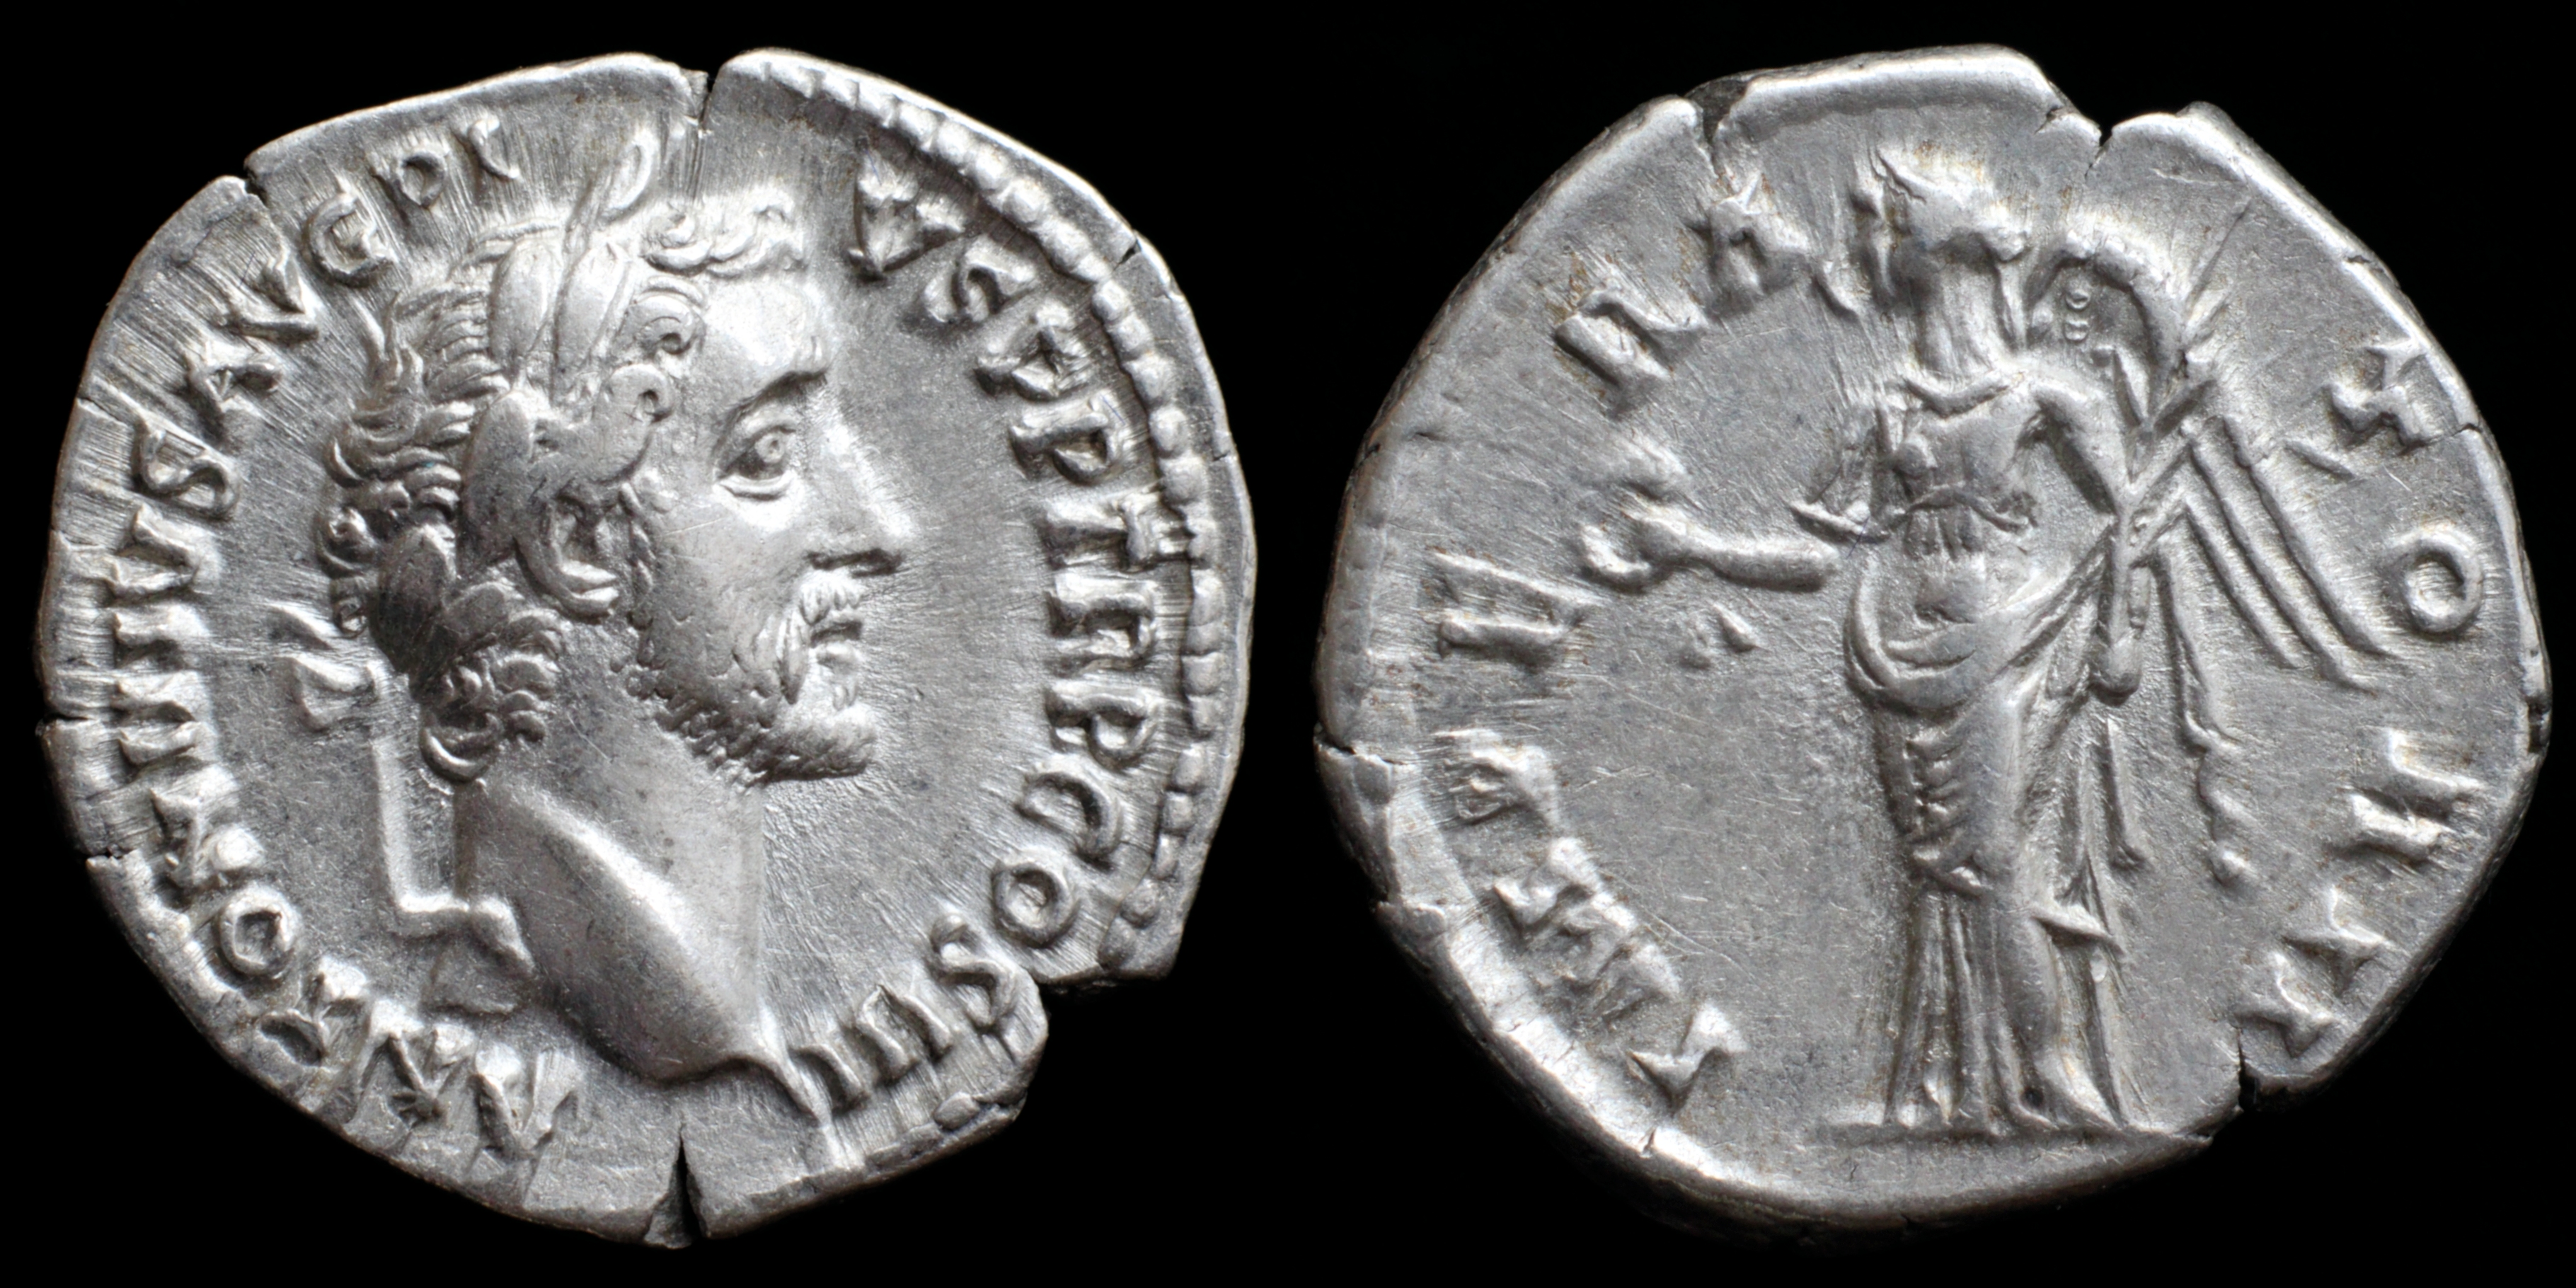 /Files/Images/Coinsite/CoinDB/858_Antoninus_Pius_Victory.jpg